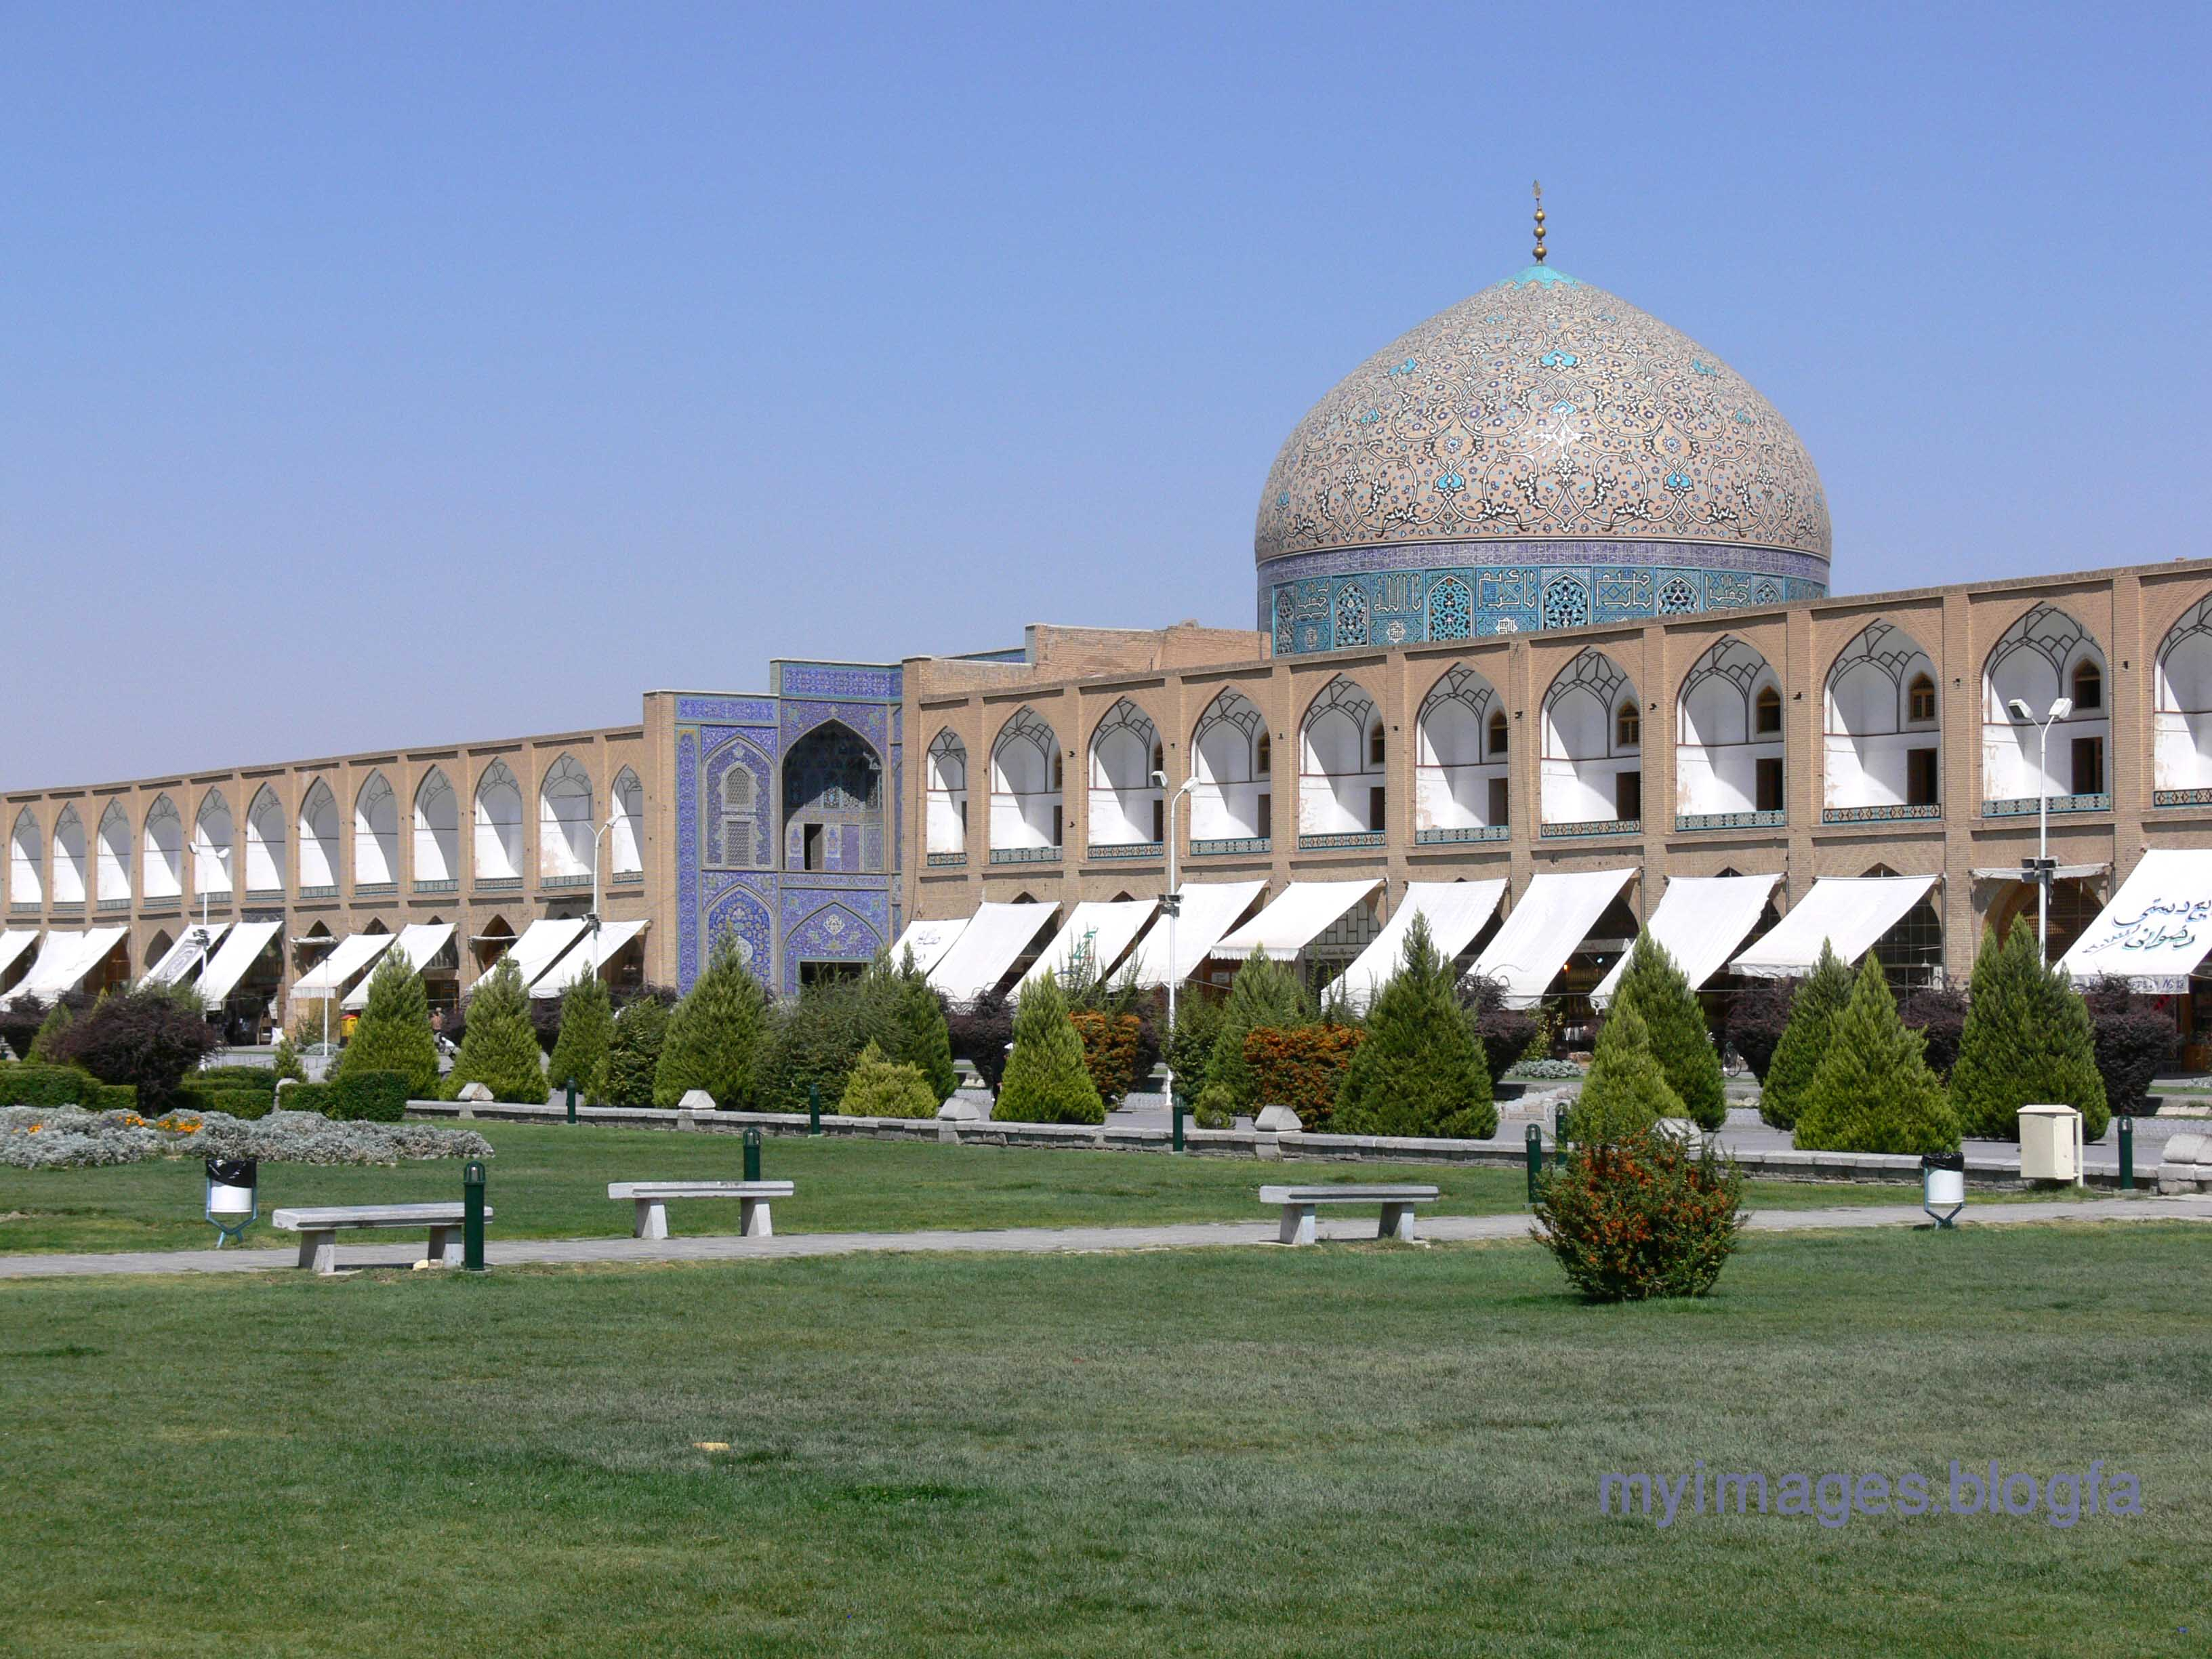 sheikh lutfallah mosque The shaykh lutfallah mosque, built in 1617-18, is located at the center of the east side of isfahan's maydan, or grand royal square (512 by 159 meters), built by shah 'abbas i between 1590 and 1602 the maydan was an expression of isfahan's emergence as the new political and economic capital of the safavid dynasty.